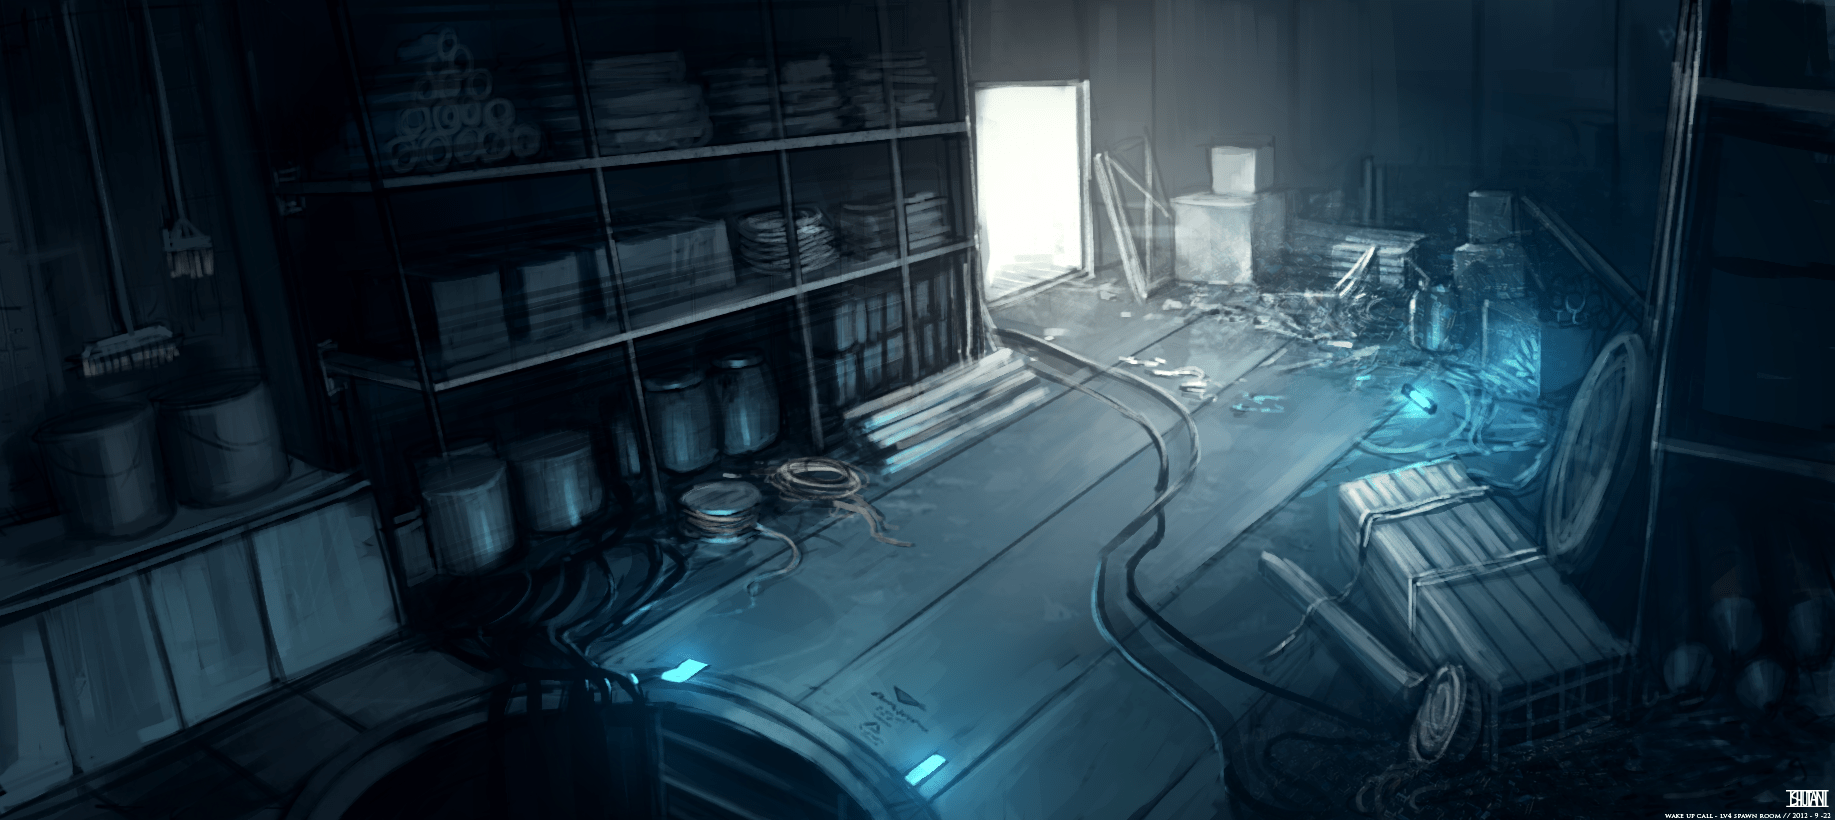 Wallpaper Engine Gun Anime Girl Construction Room Concept Art Image Wake Up Call Indie Db